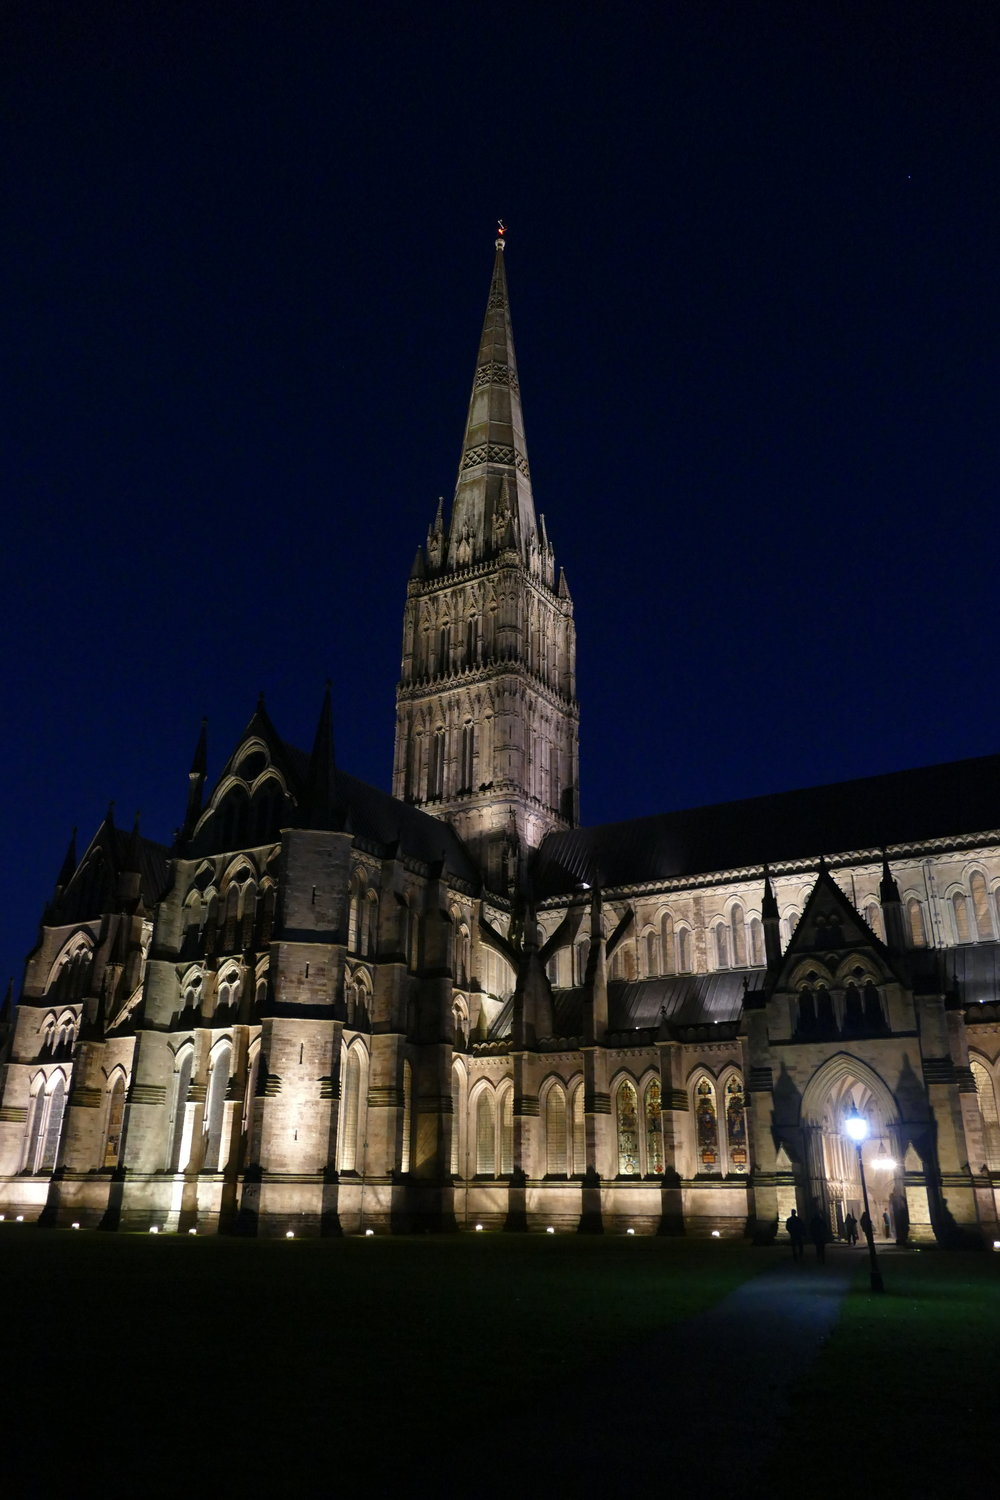 The setting for the evening event – Salisbury Cathedral – was so dramatic, it deserves its own photograph.